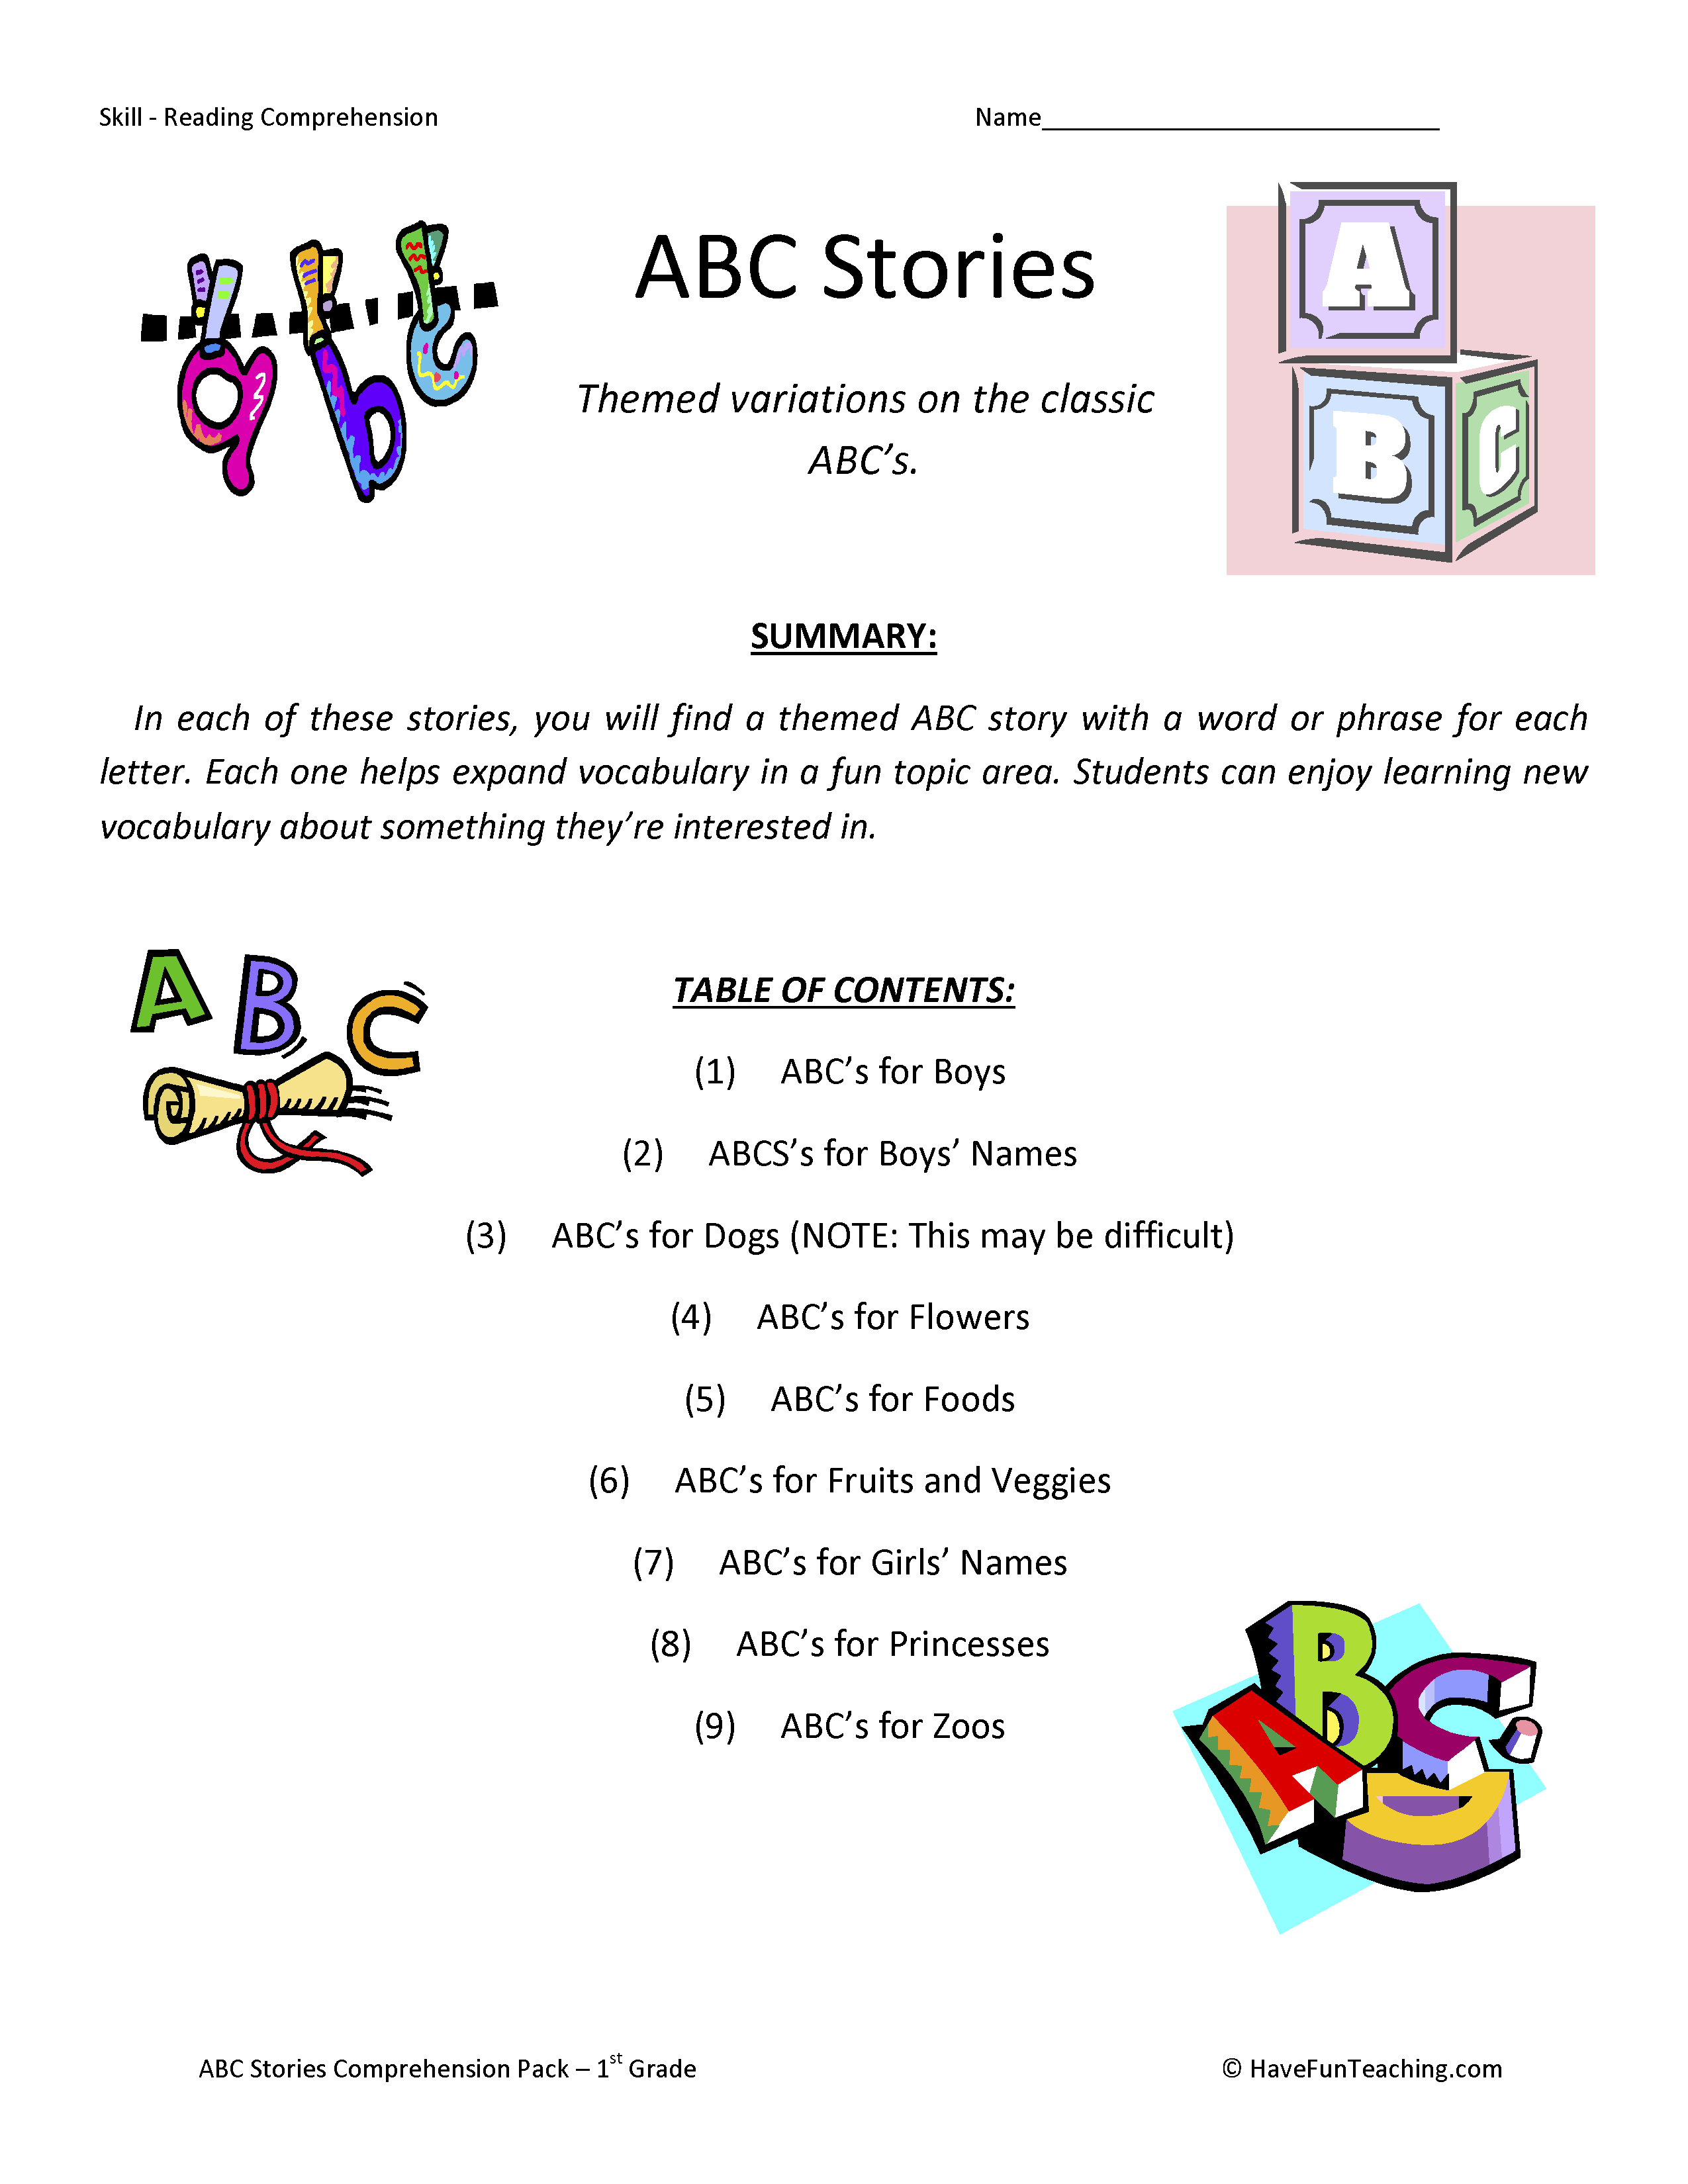 worksheet Free Reading Comprehension Worksheets For 1st Grade first grade reading comprehension worksheets have fun teaching abc alphabet stories worksheets